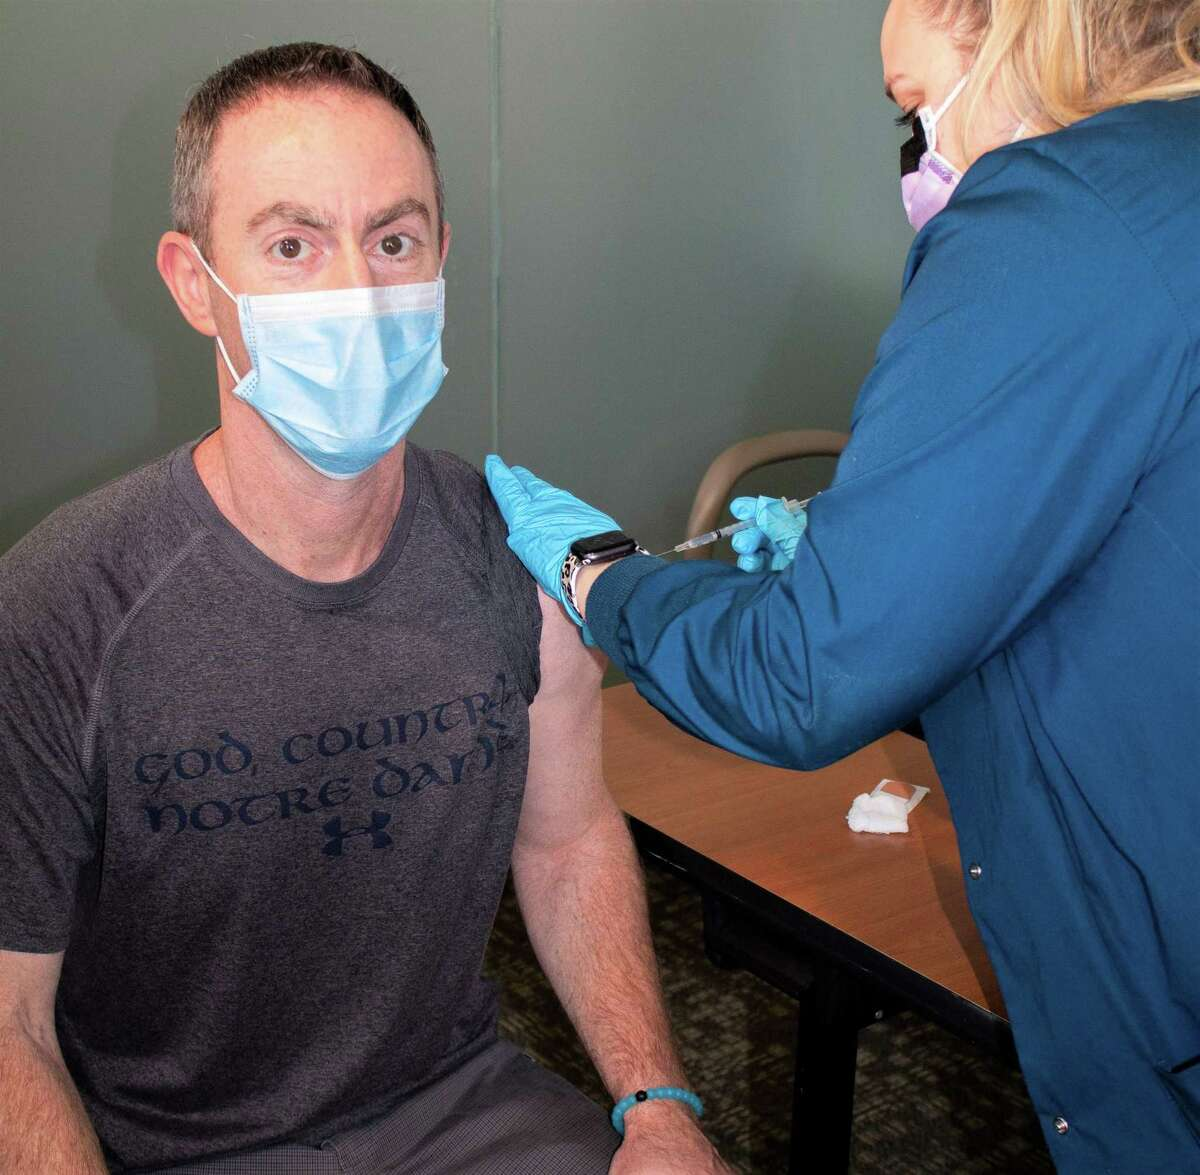 The first 12 Middlesex Health employees received the Pfizer-BioNTech COVID-19 vaccine Tuesday. Shown is Dr. Jon Bankoff, Middlesex Health chairman of emergency medicine.